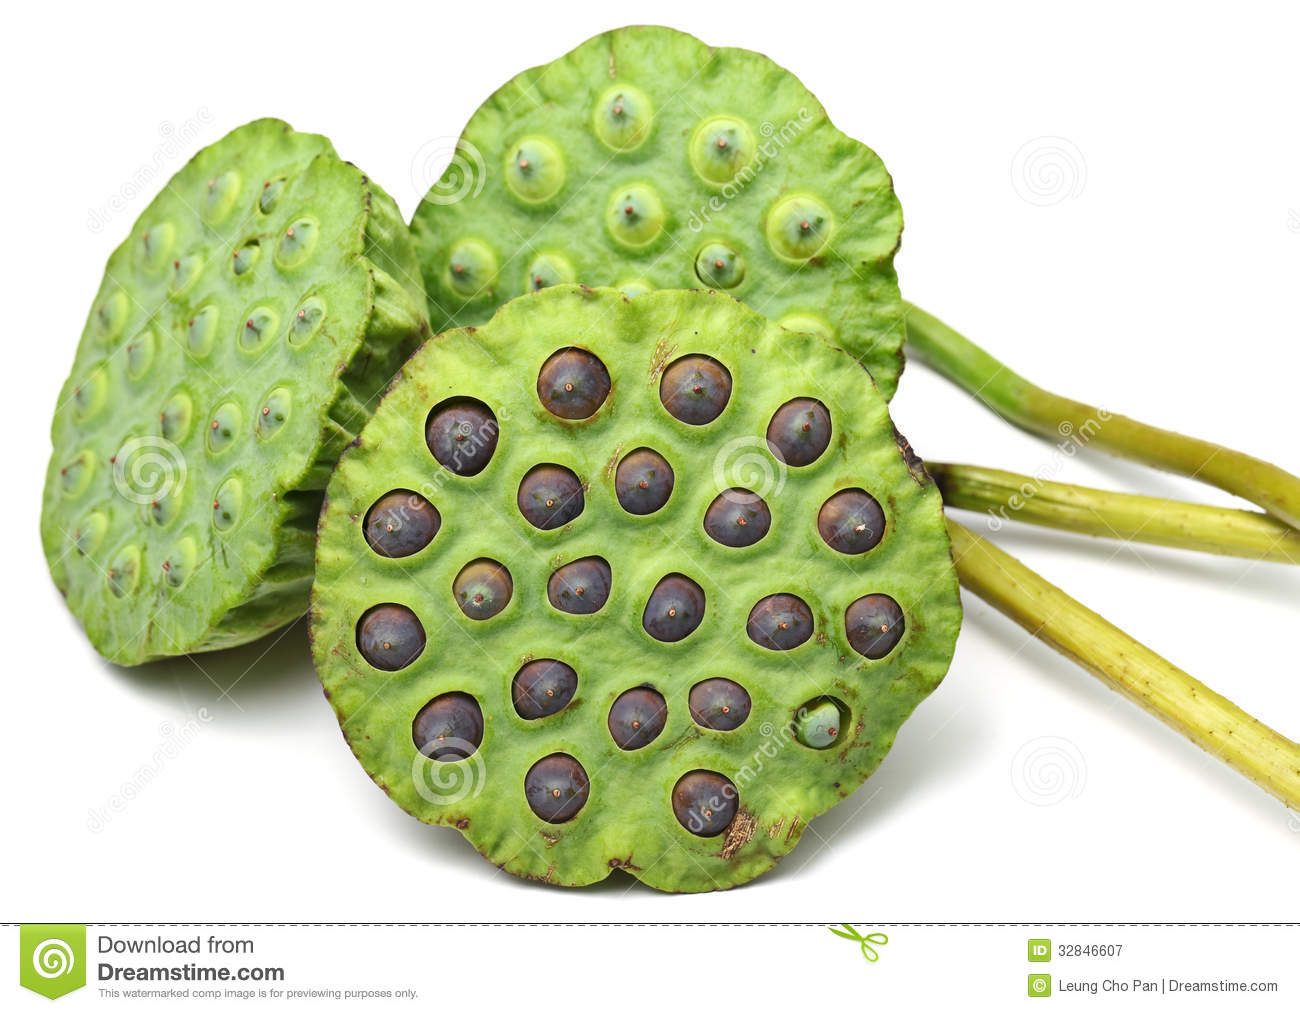 Lotus Seed Pod Royalty Free Stock Image.